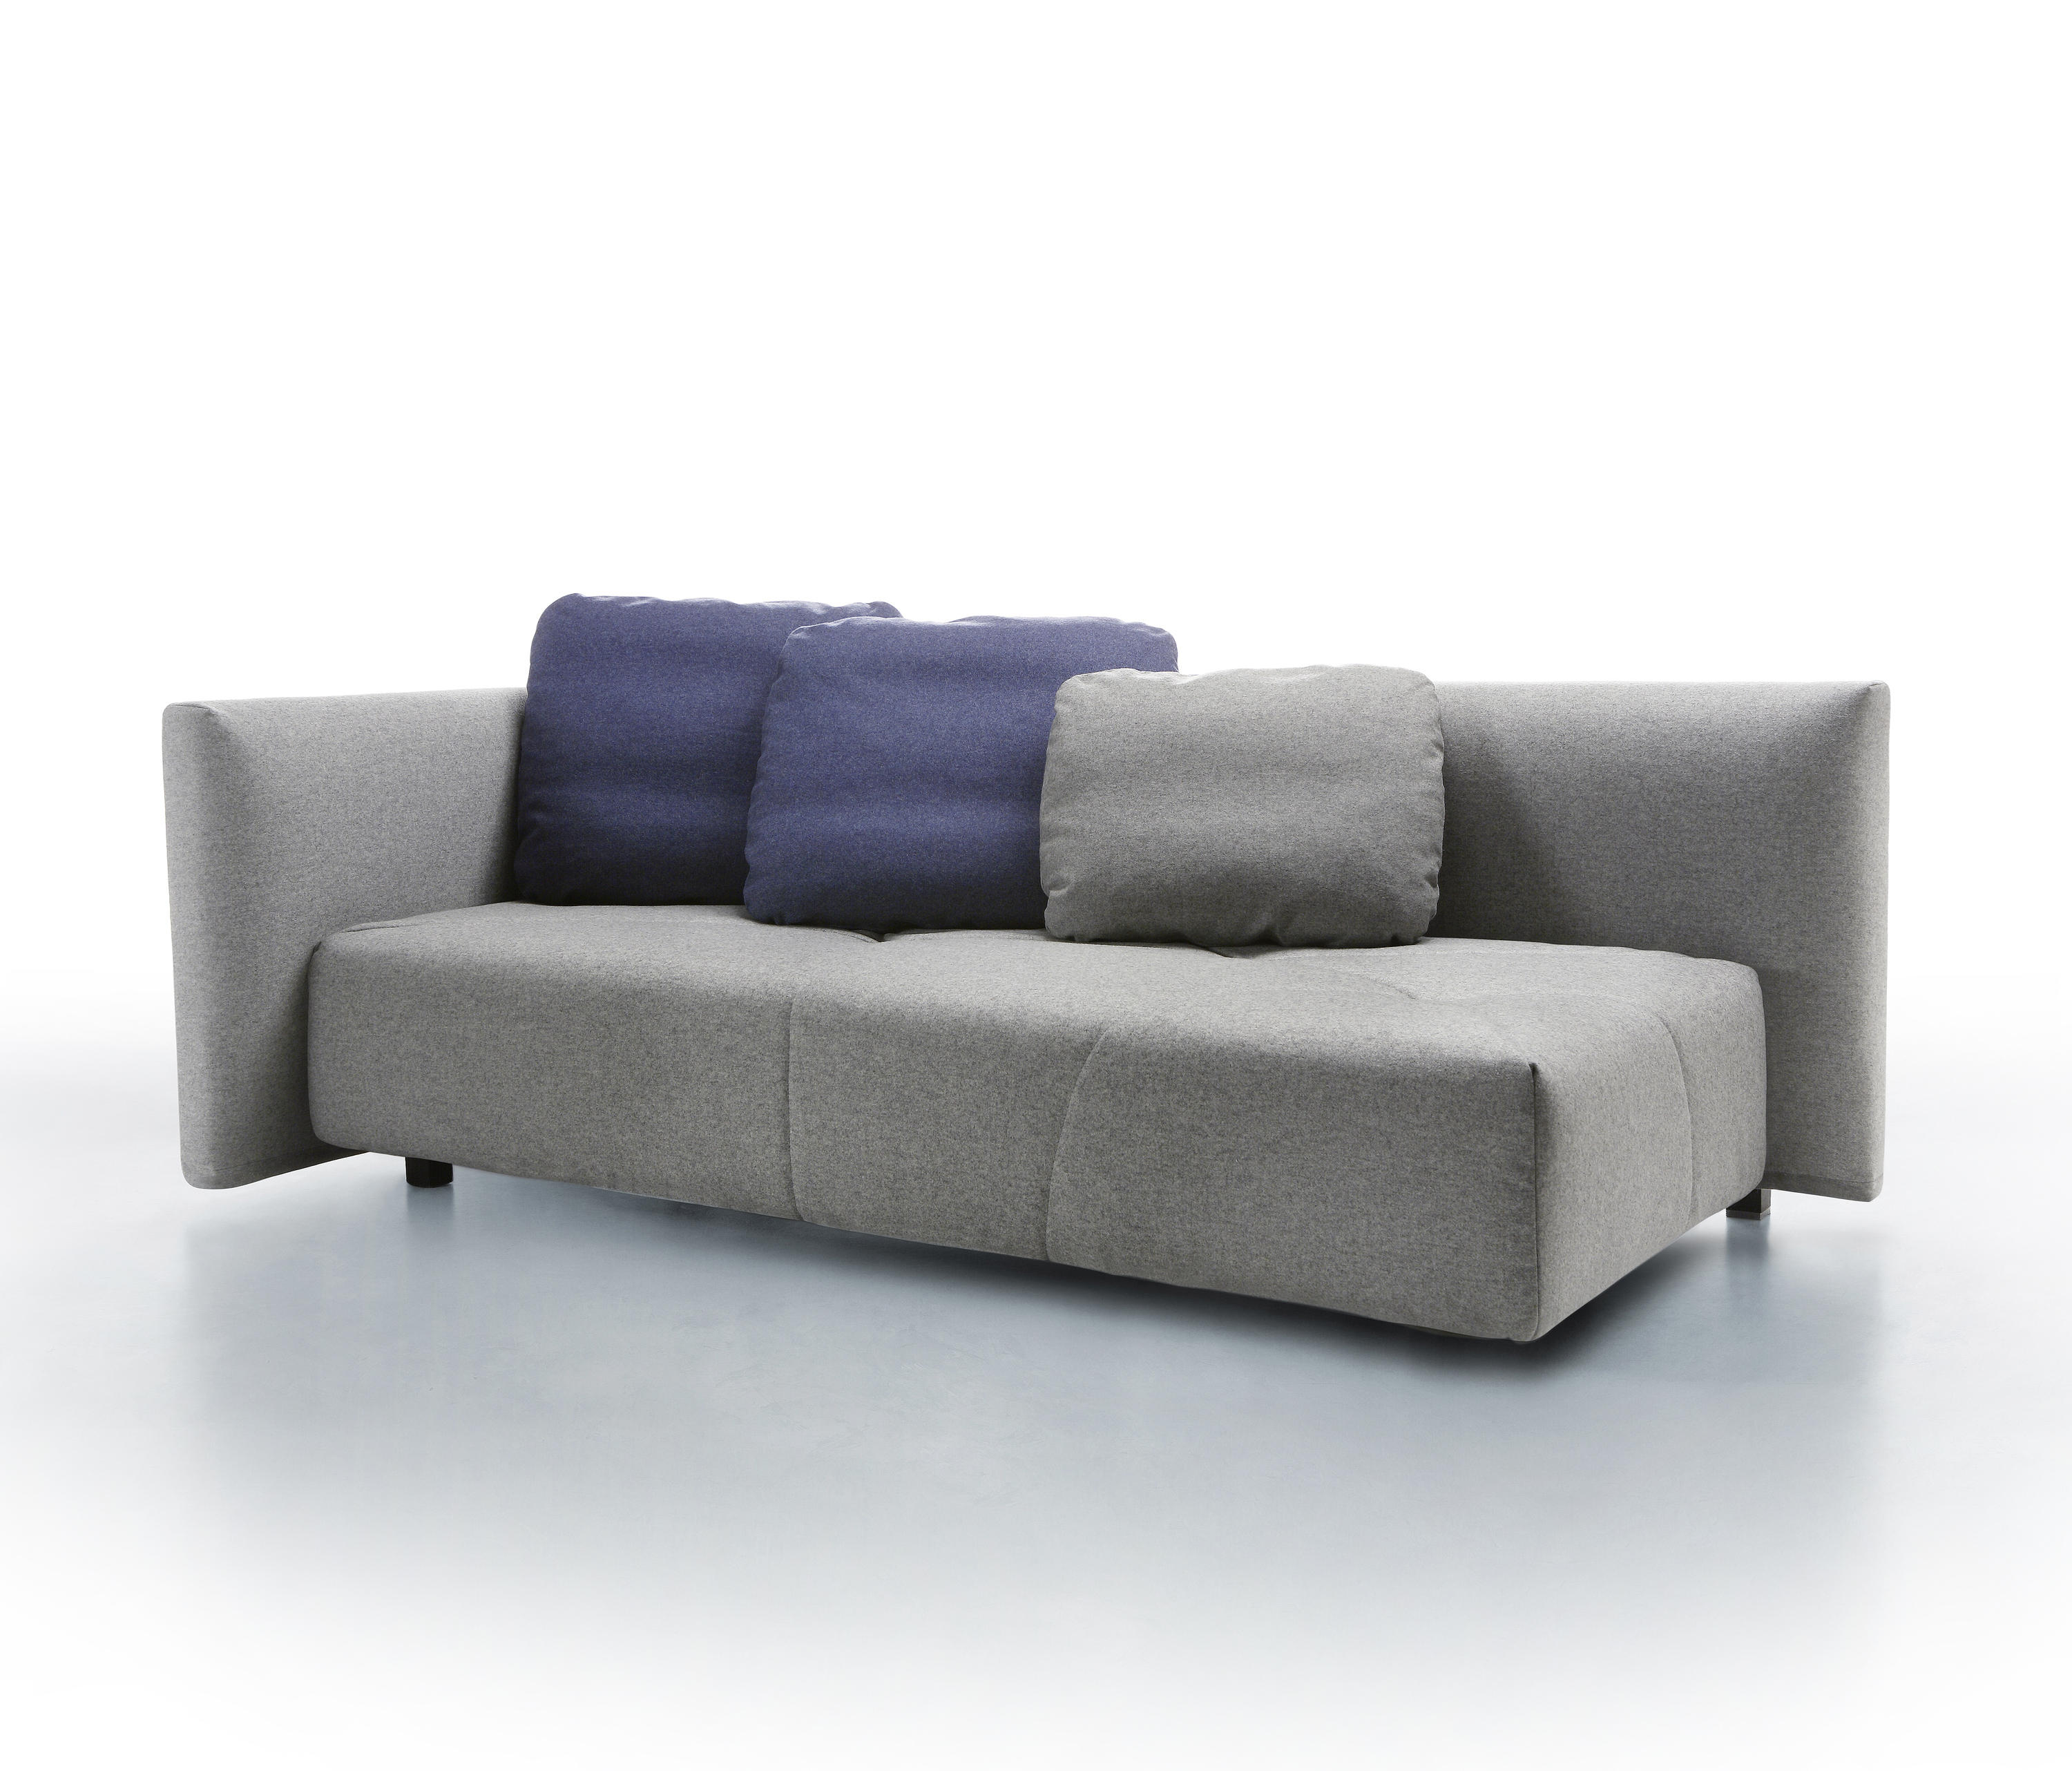 BEDBED SINGLE Sofa beds from Design You Edit